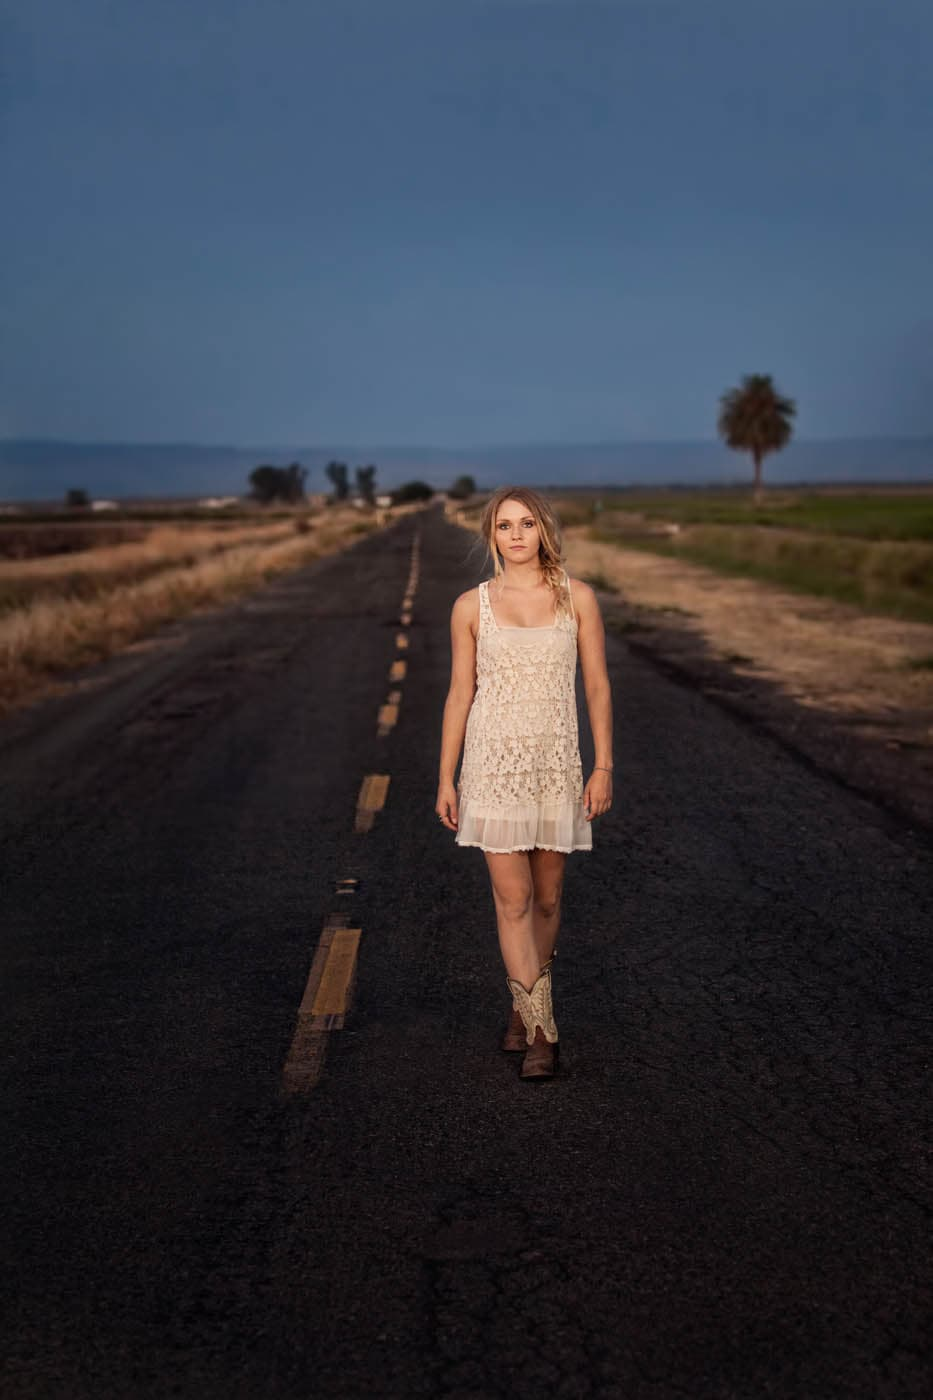 Young woman in cowboy boots and a Free People slip walking down a back road in a rural area on a Summer evening.